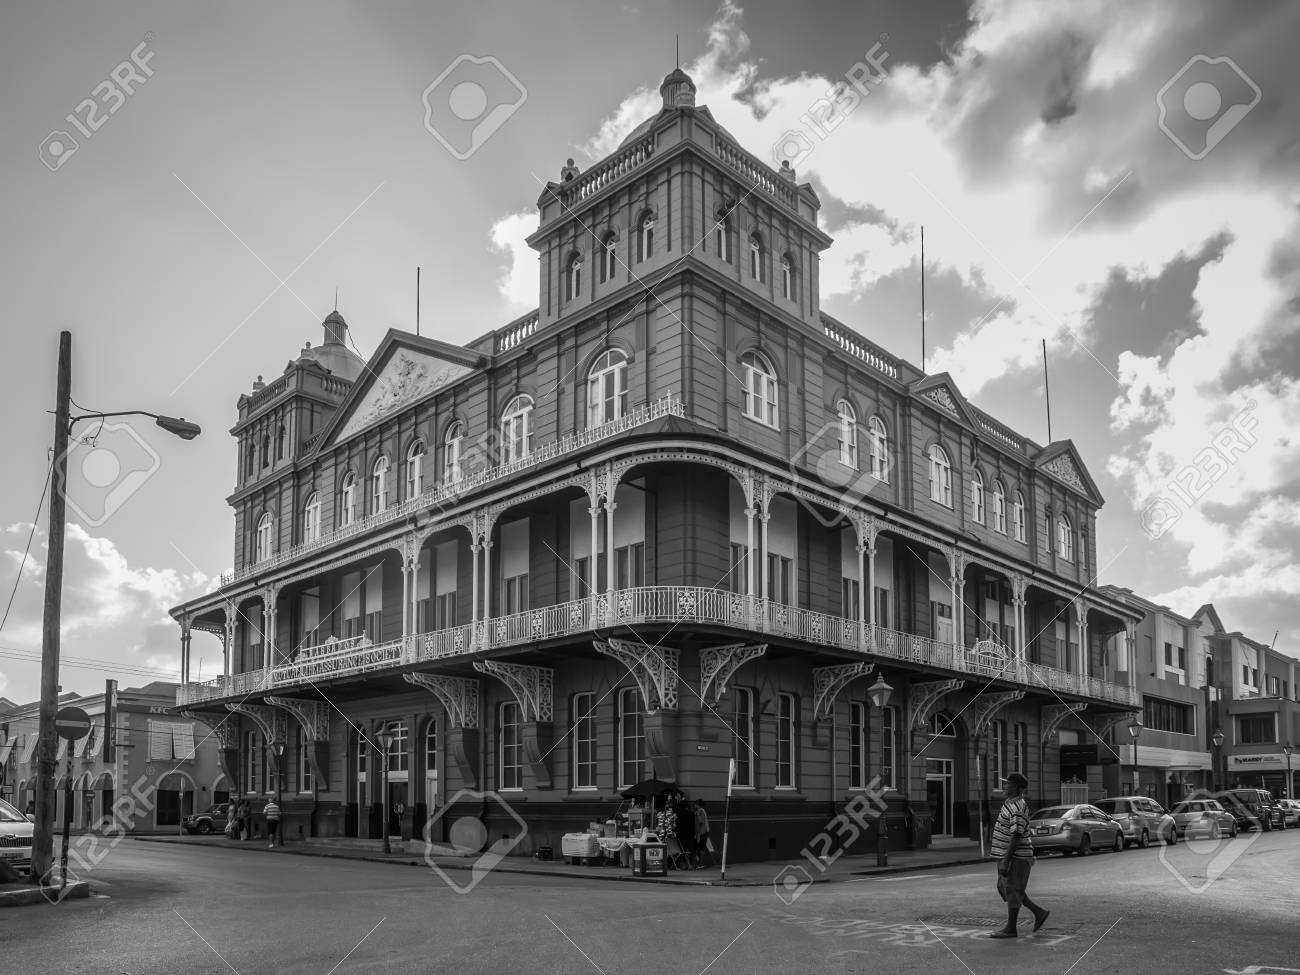 Black and white photography bridgetown barbados december 18 2016 the iconic barbados mutual life assurance building